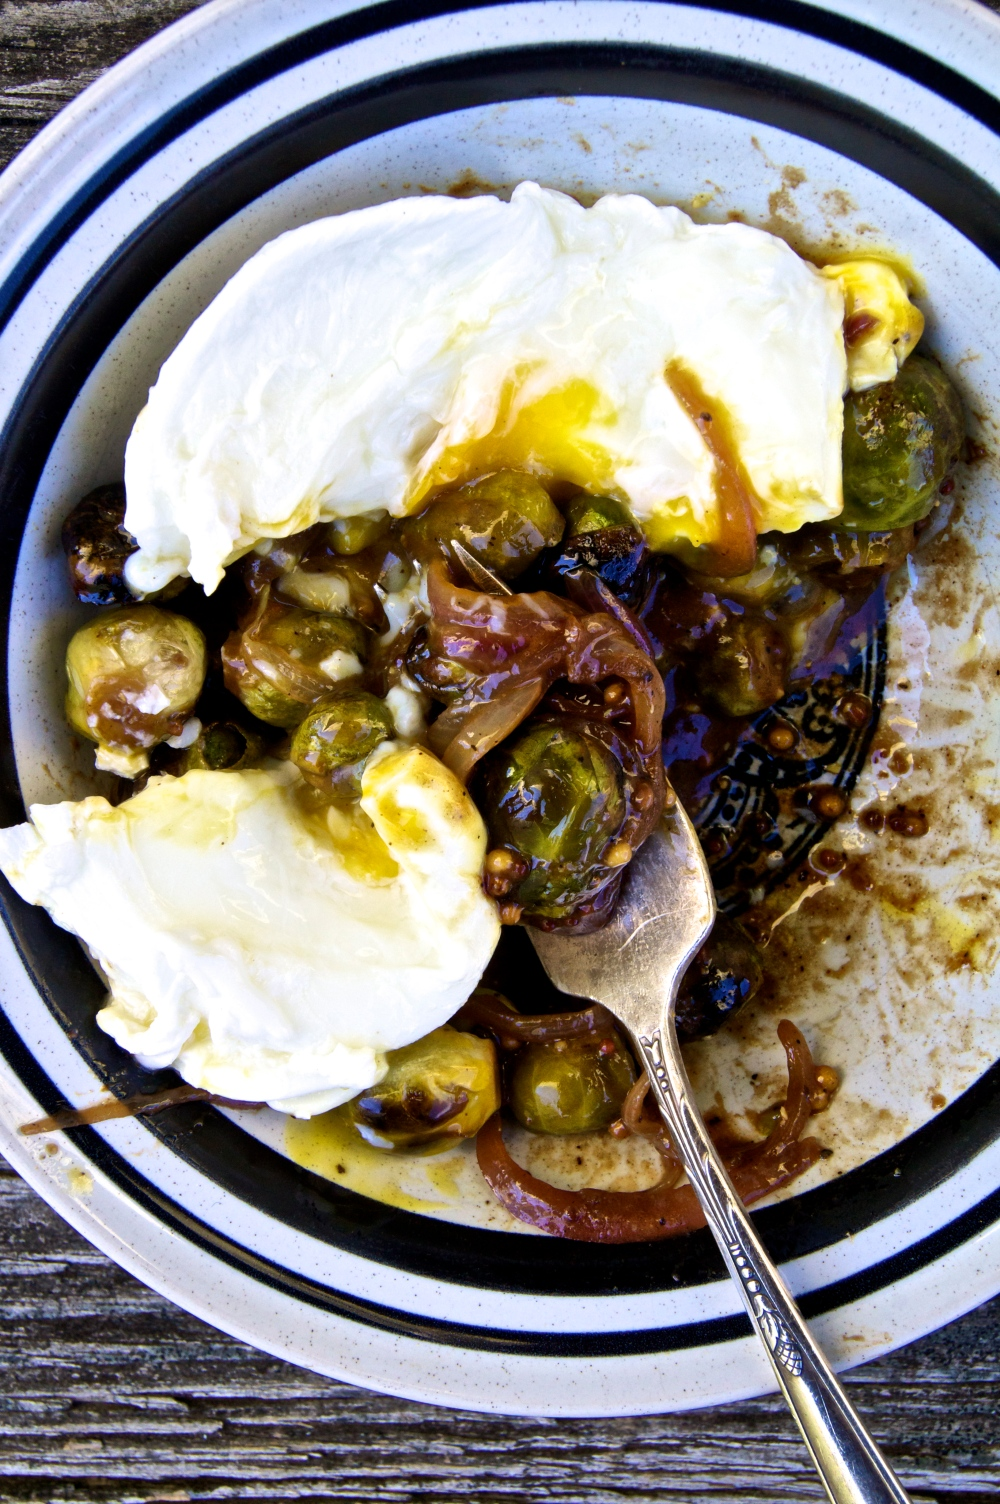 maple-mustard brussel sprouts with an egg